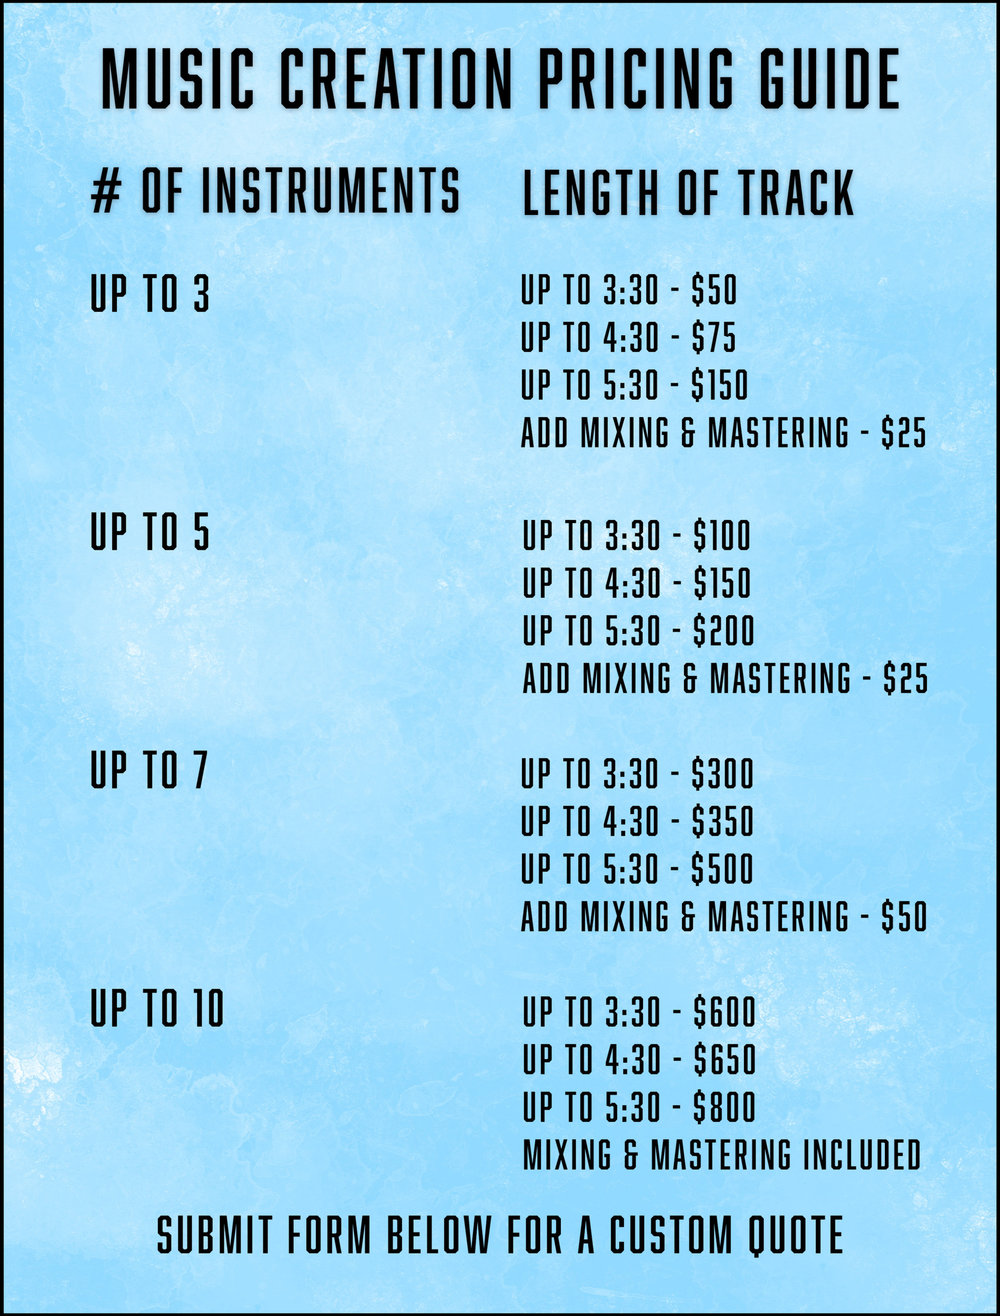 Music+Creation+Pricing+Guide.jpg